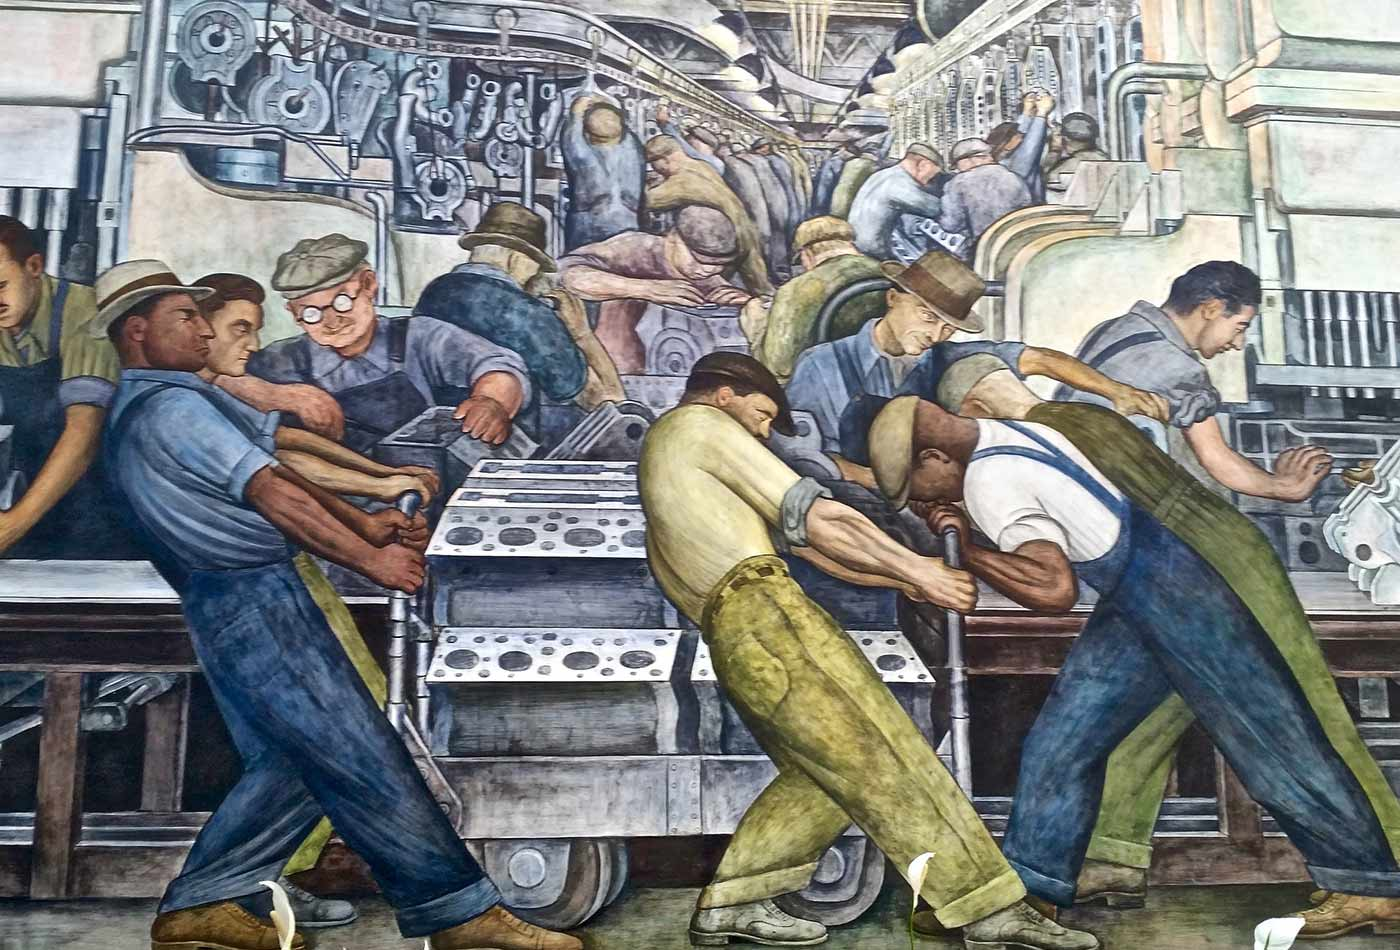 Detail, Detroit Industry Murals by Diego Rivera, at the DIA